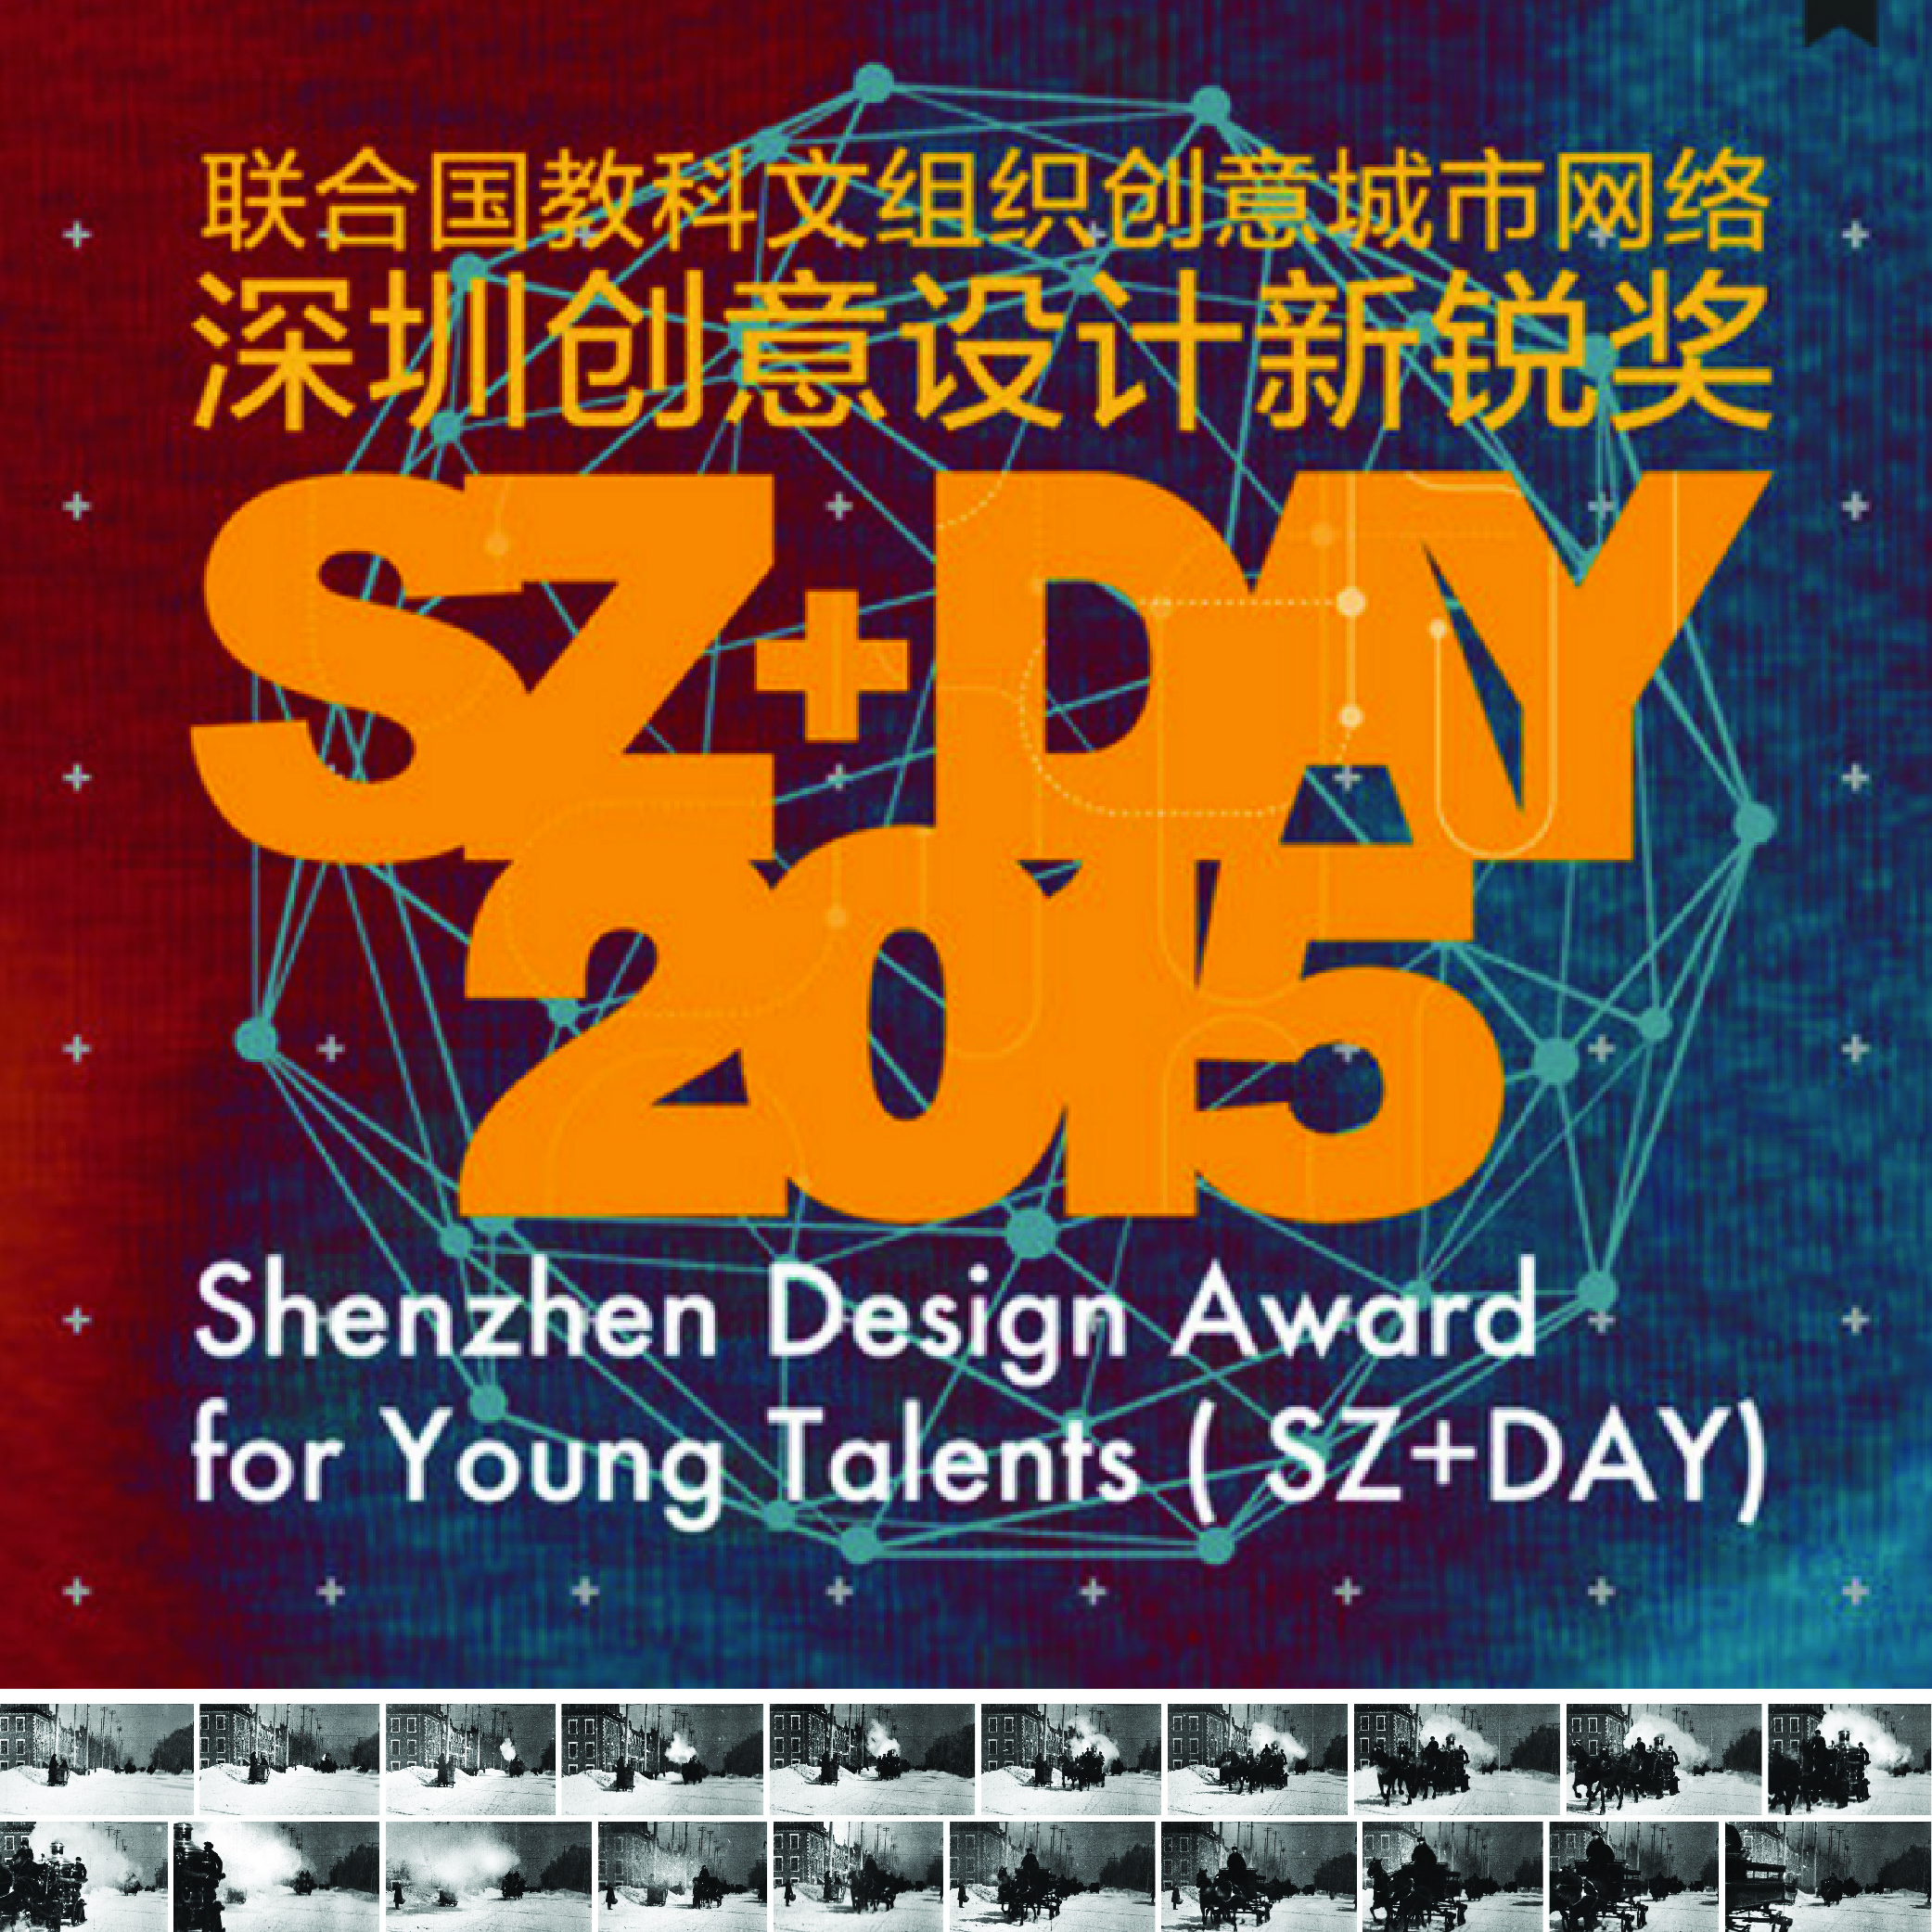 SHENZHEN DESIGN AWARD FOR YOUNG TALENTS 2015 - Finaliste: Résidence Edison